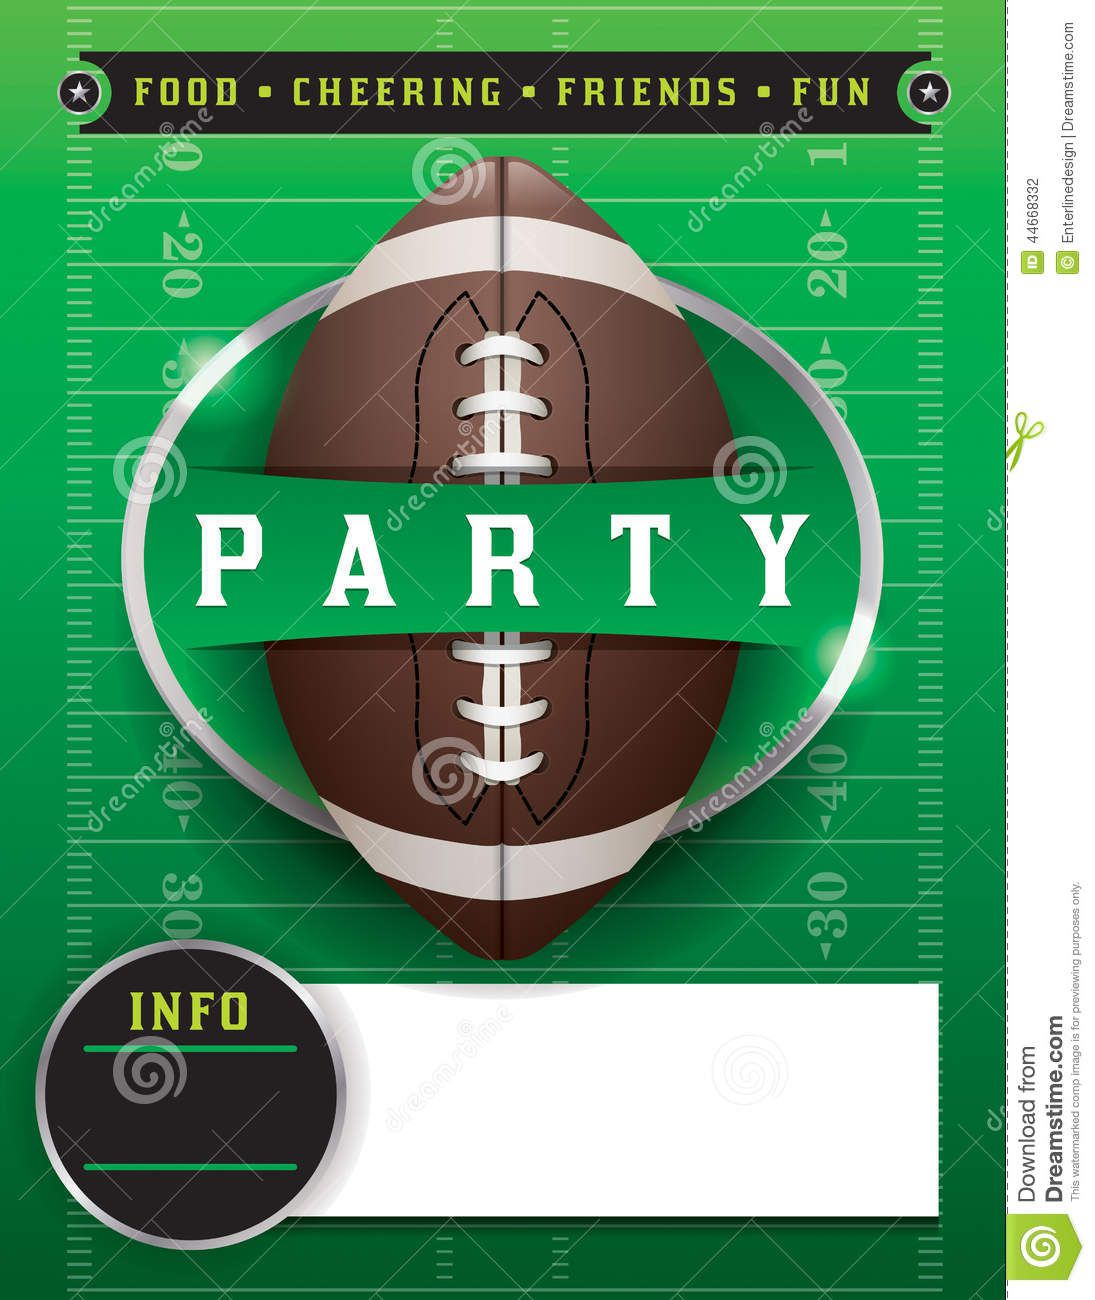 004 Phenomenal Free Tailgate Party Flyer Template Download Highest Quality Full